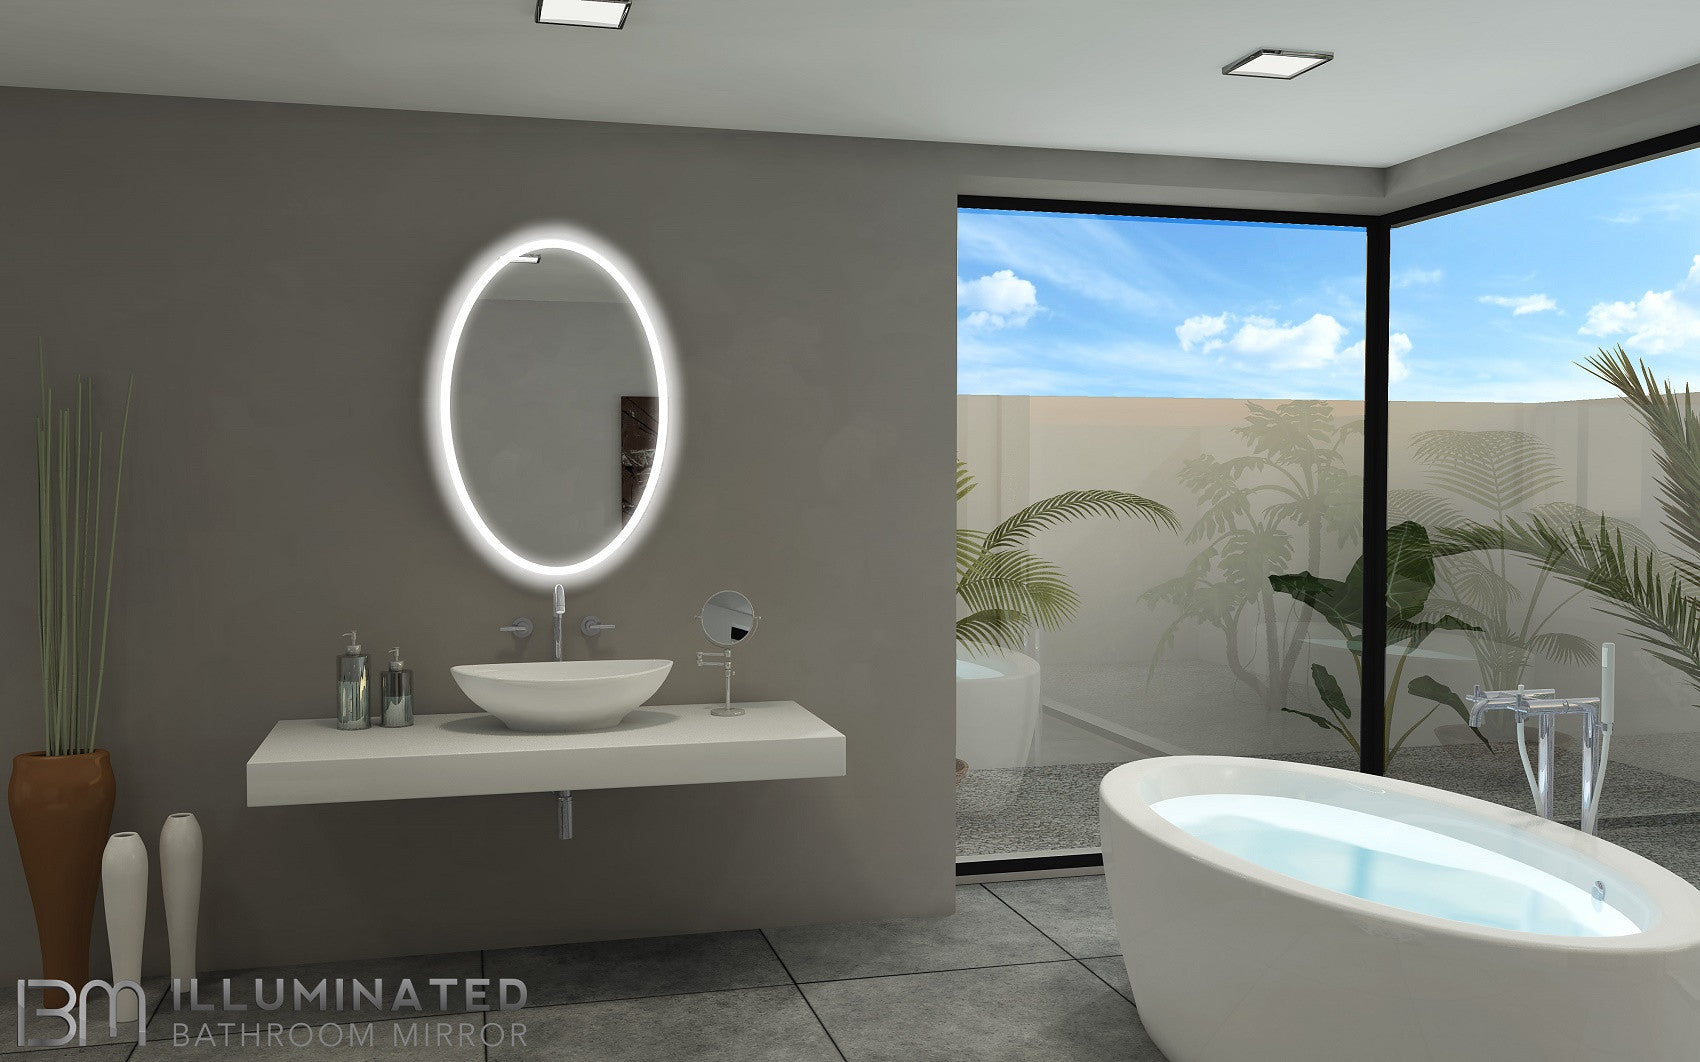 backlit bathroom mirror oval 24 x 36 in – ib mirror